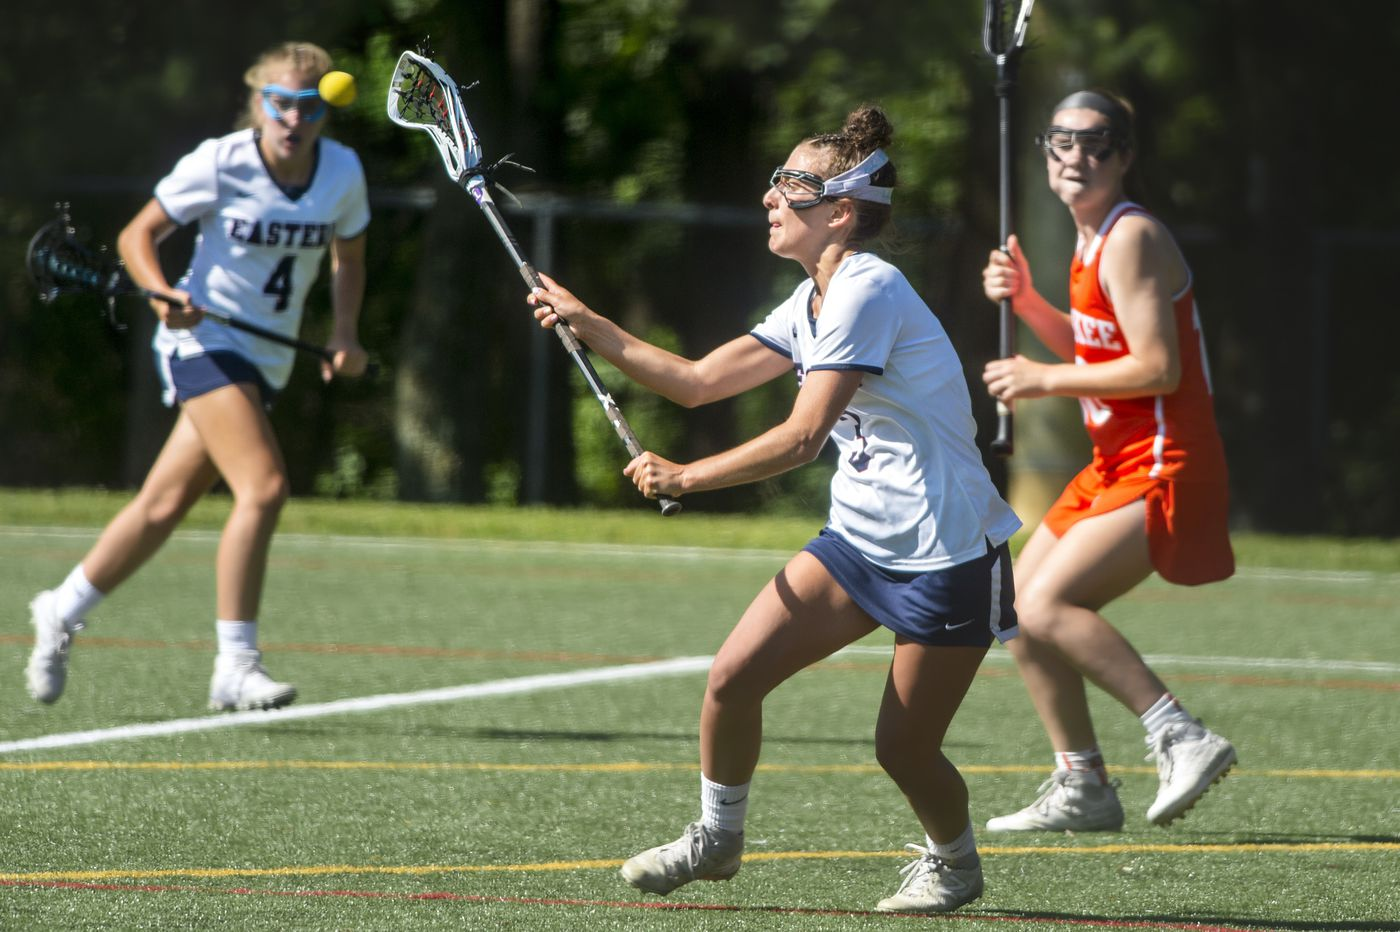 Eastern girls lose to Ridgewood in the Group 4 state lacrosse championship game